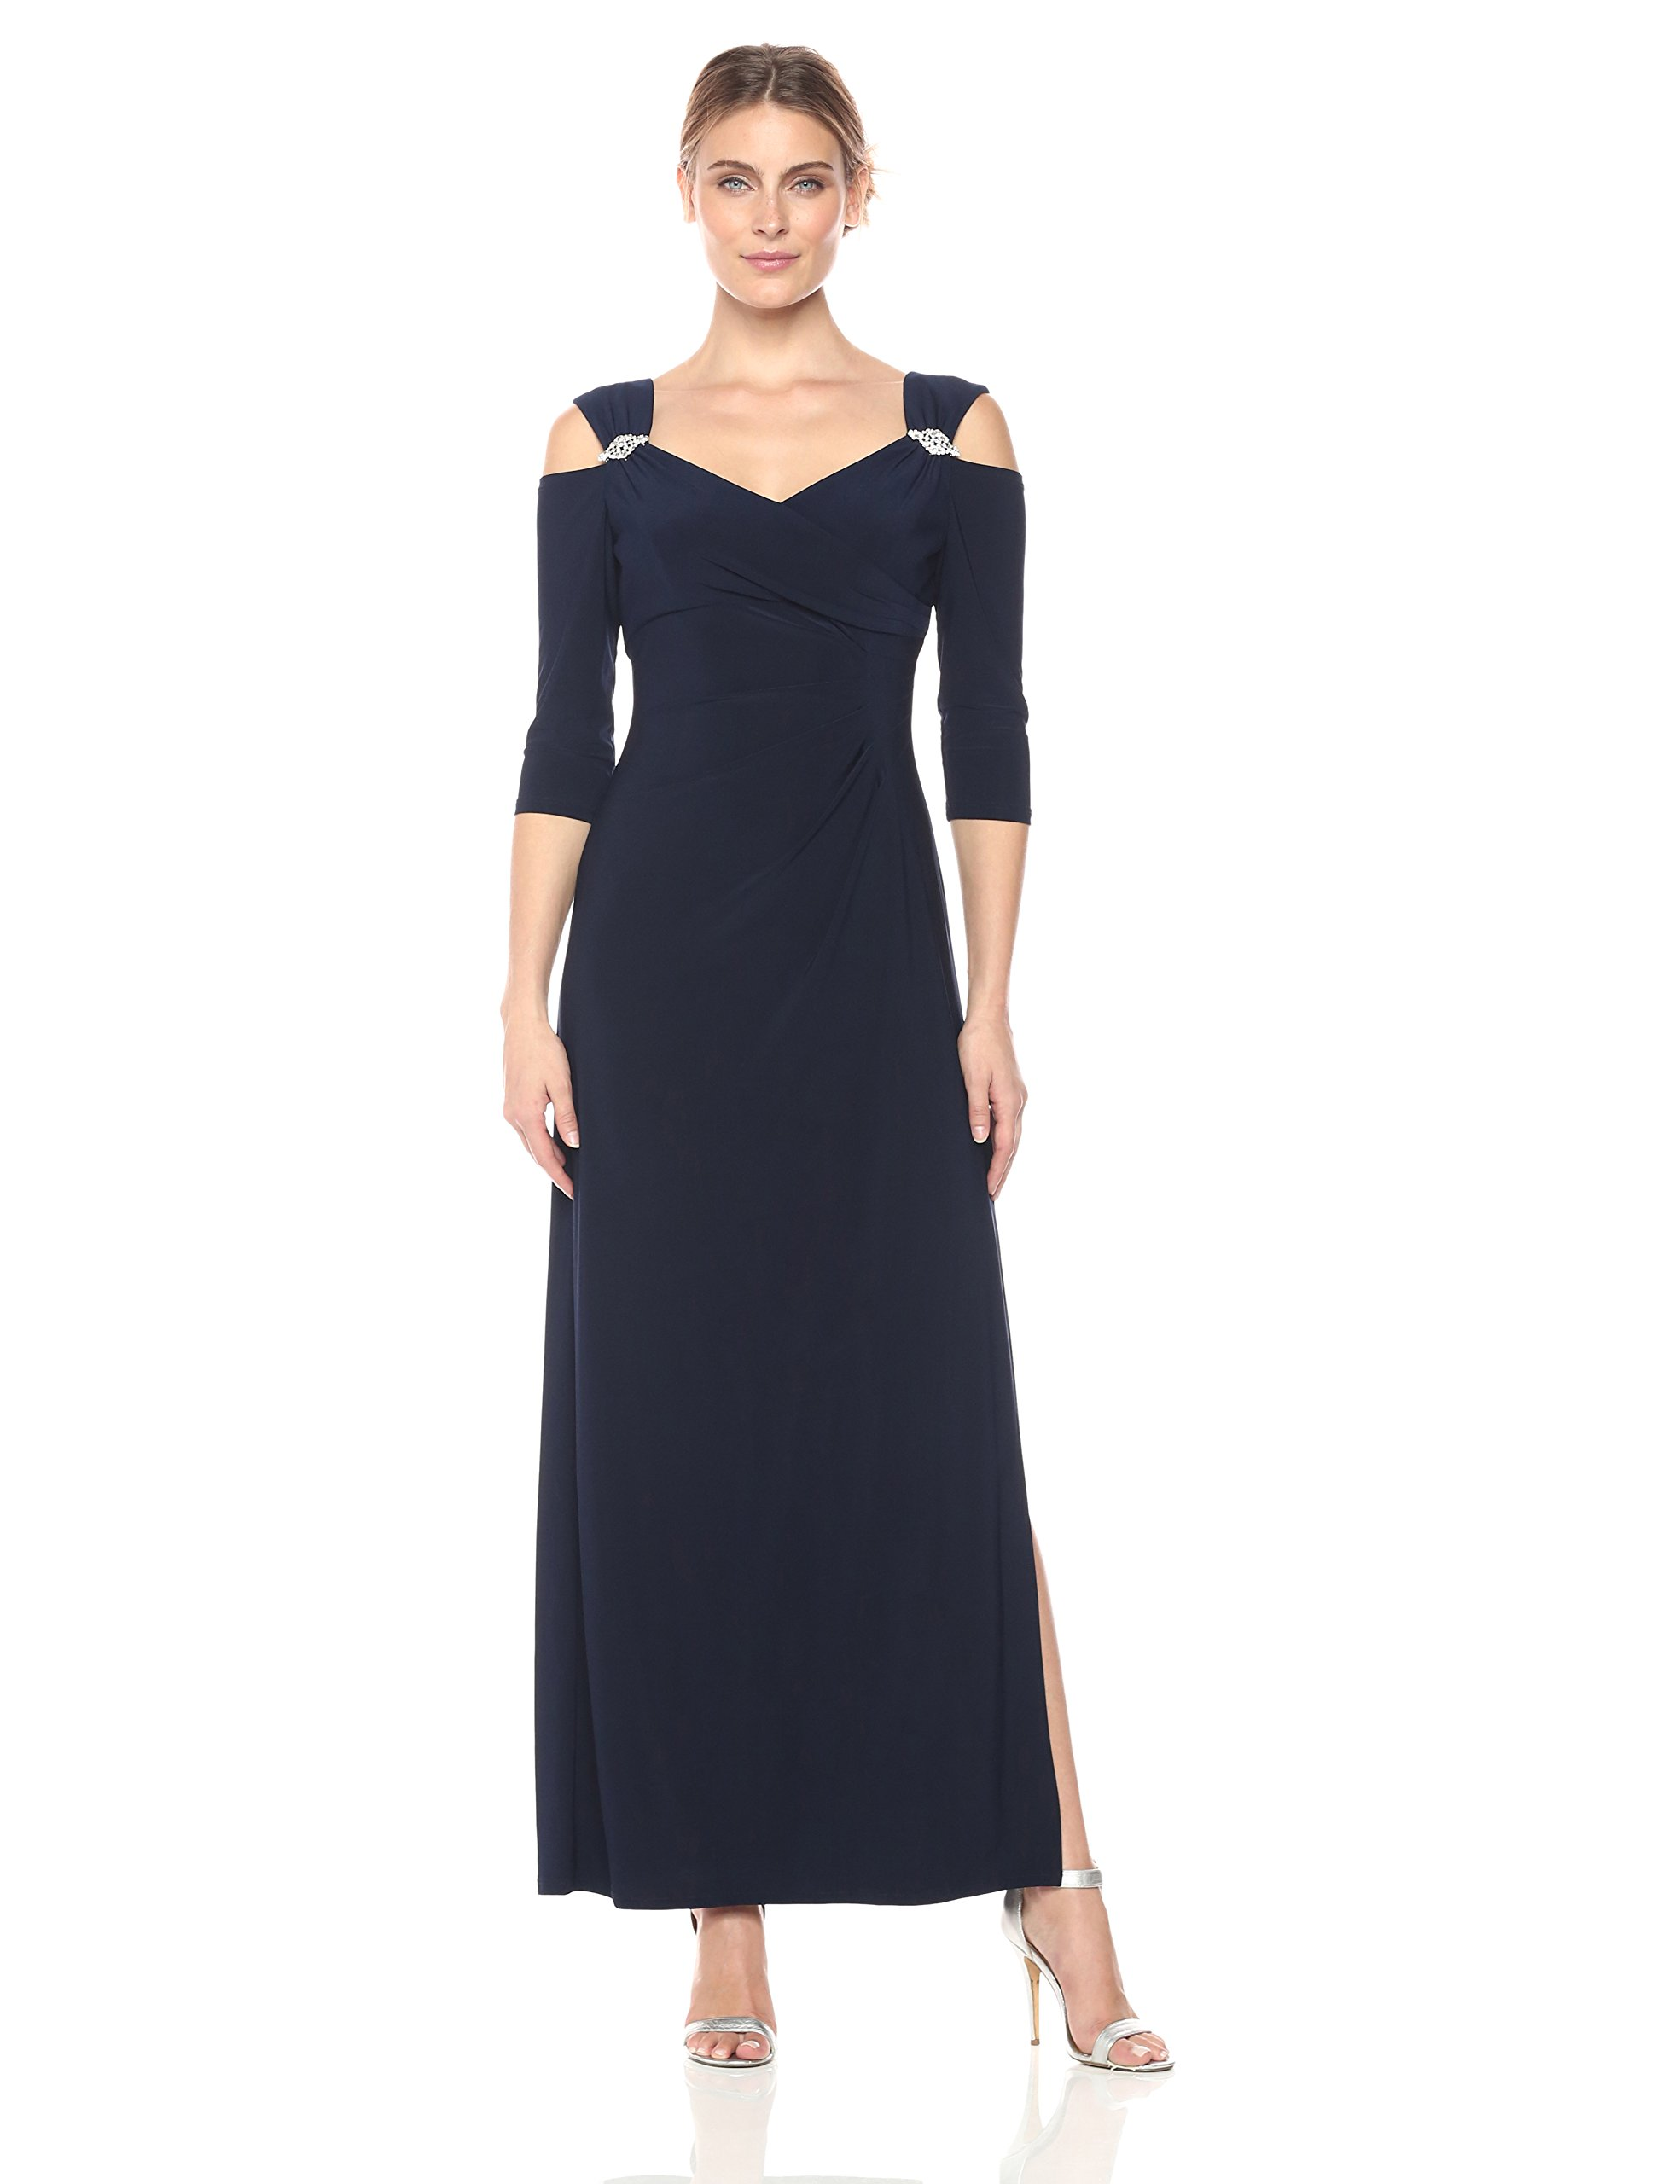 Mother Of The Bride Dresses - Women's Empire Waist Cold Shoulder With Sleeves Missy